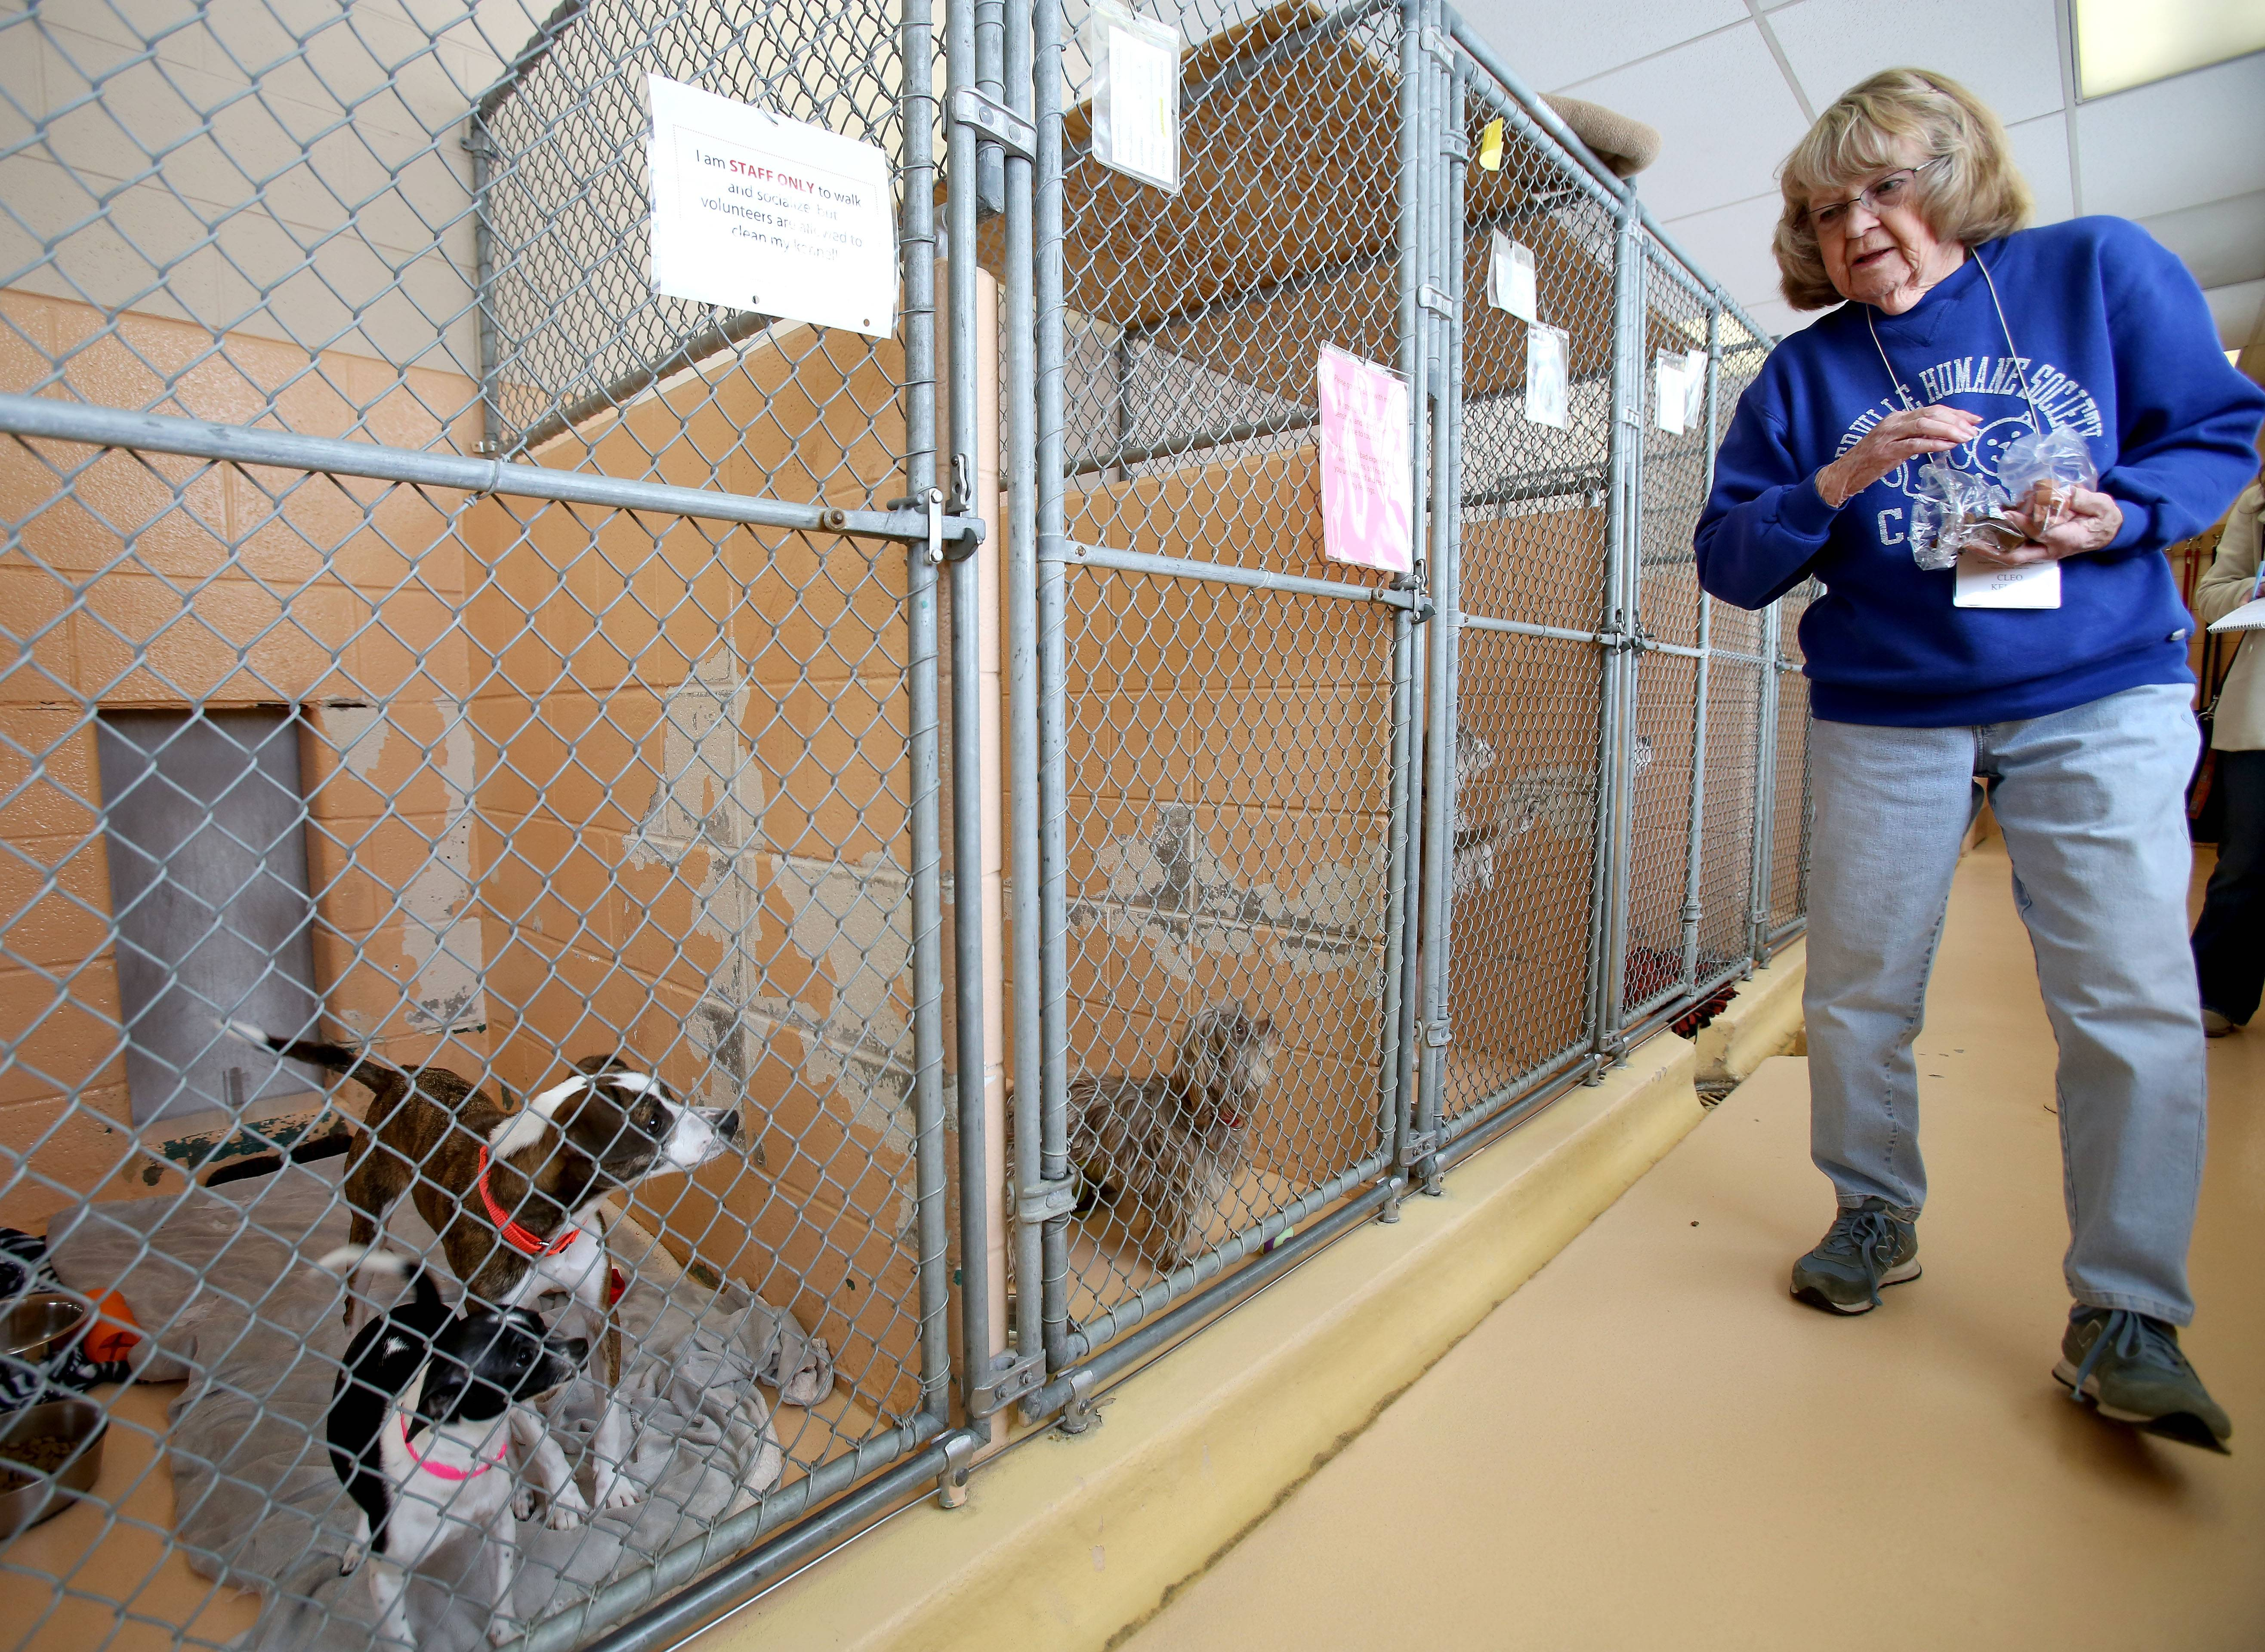 Cleo Keller feeds pieces of hot dog to pooches in the Naperville Area Humane Society's shelter as she volunteers on a recent afternoon.